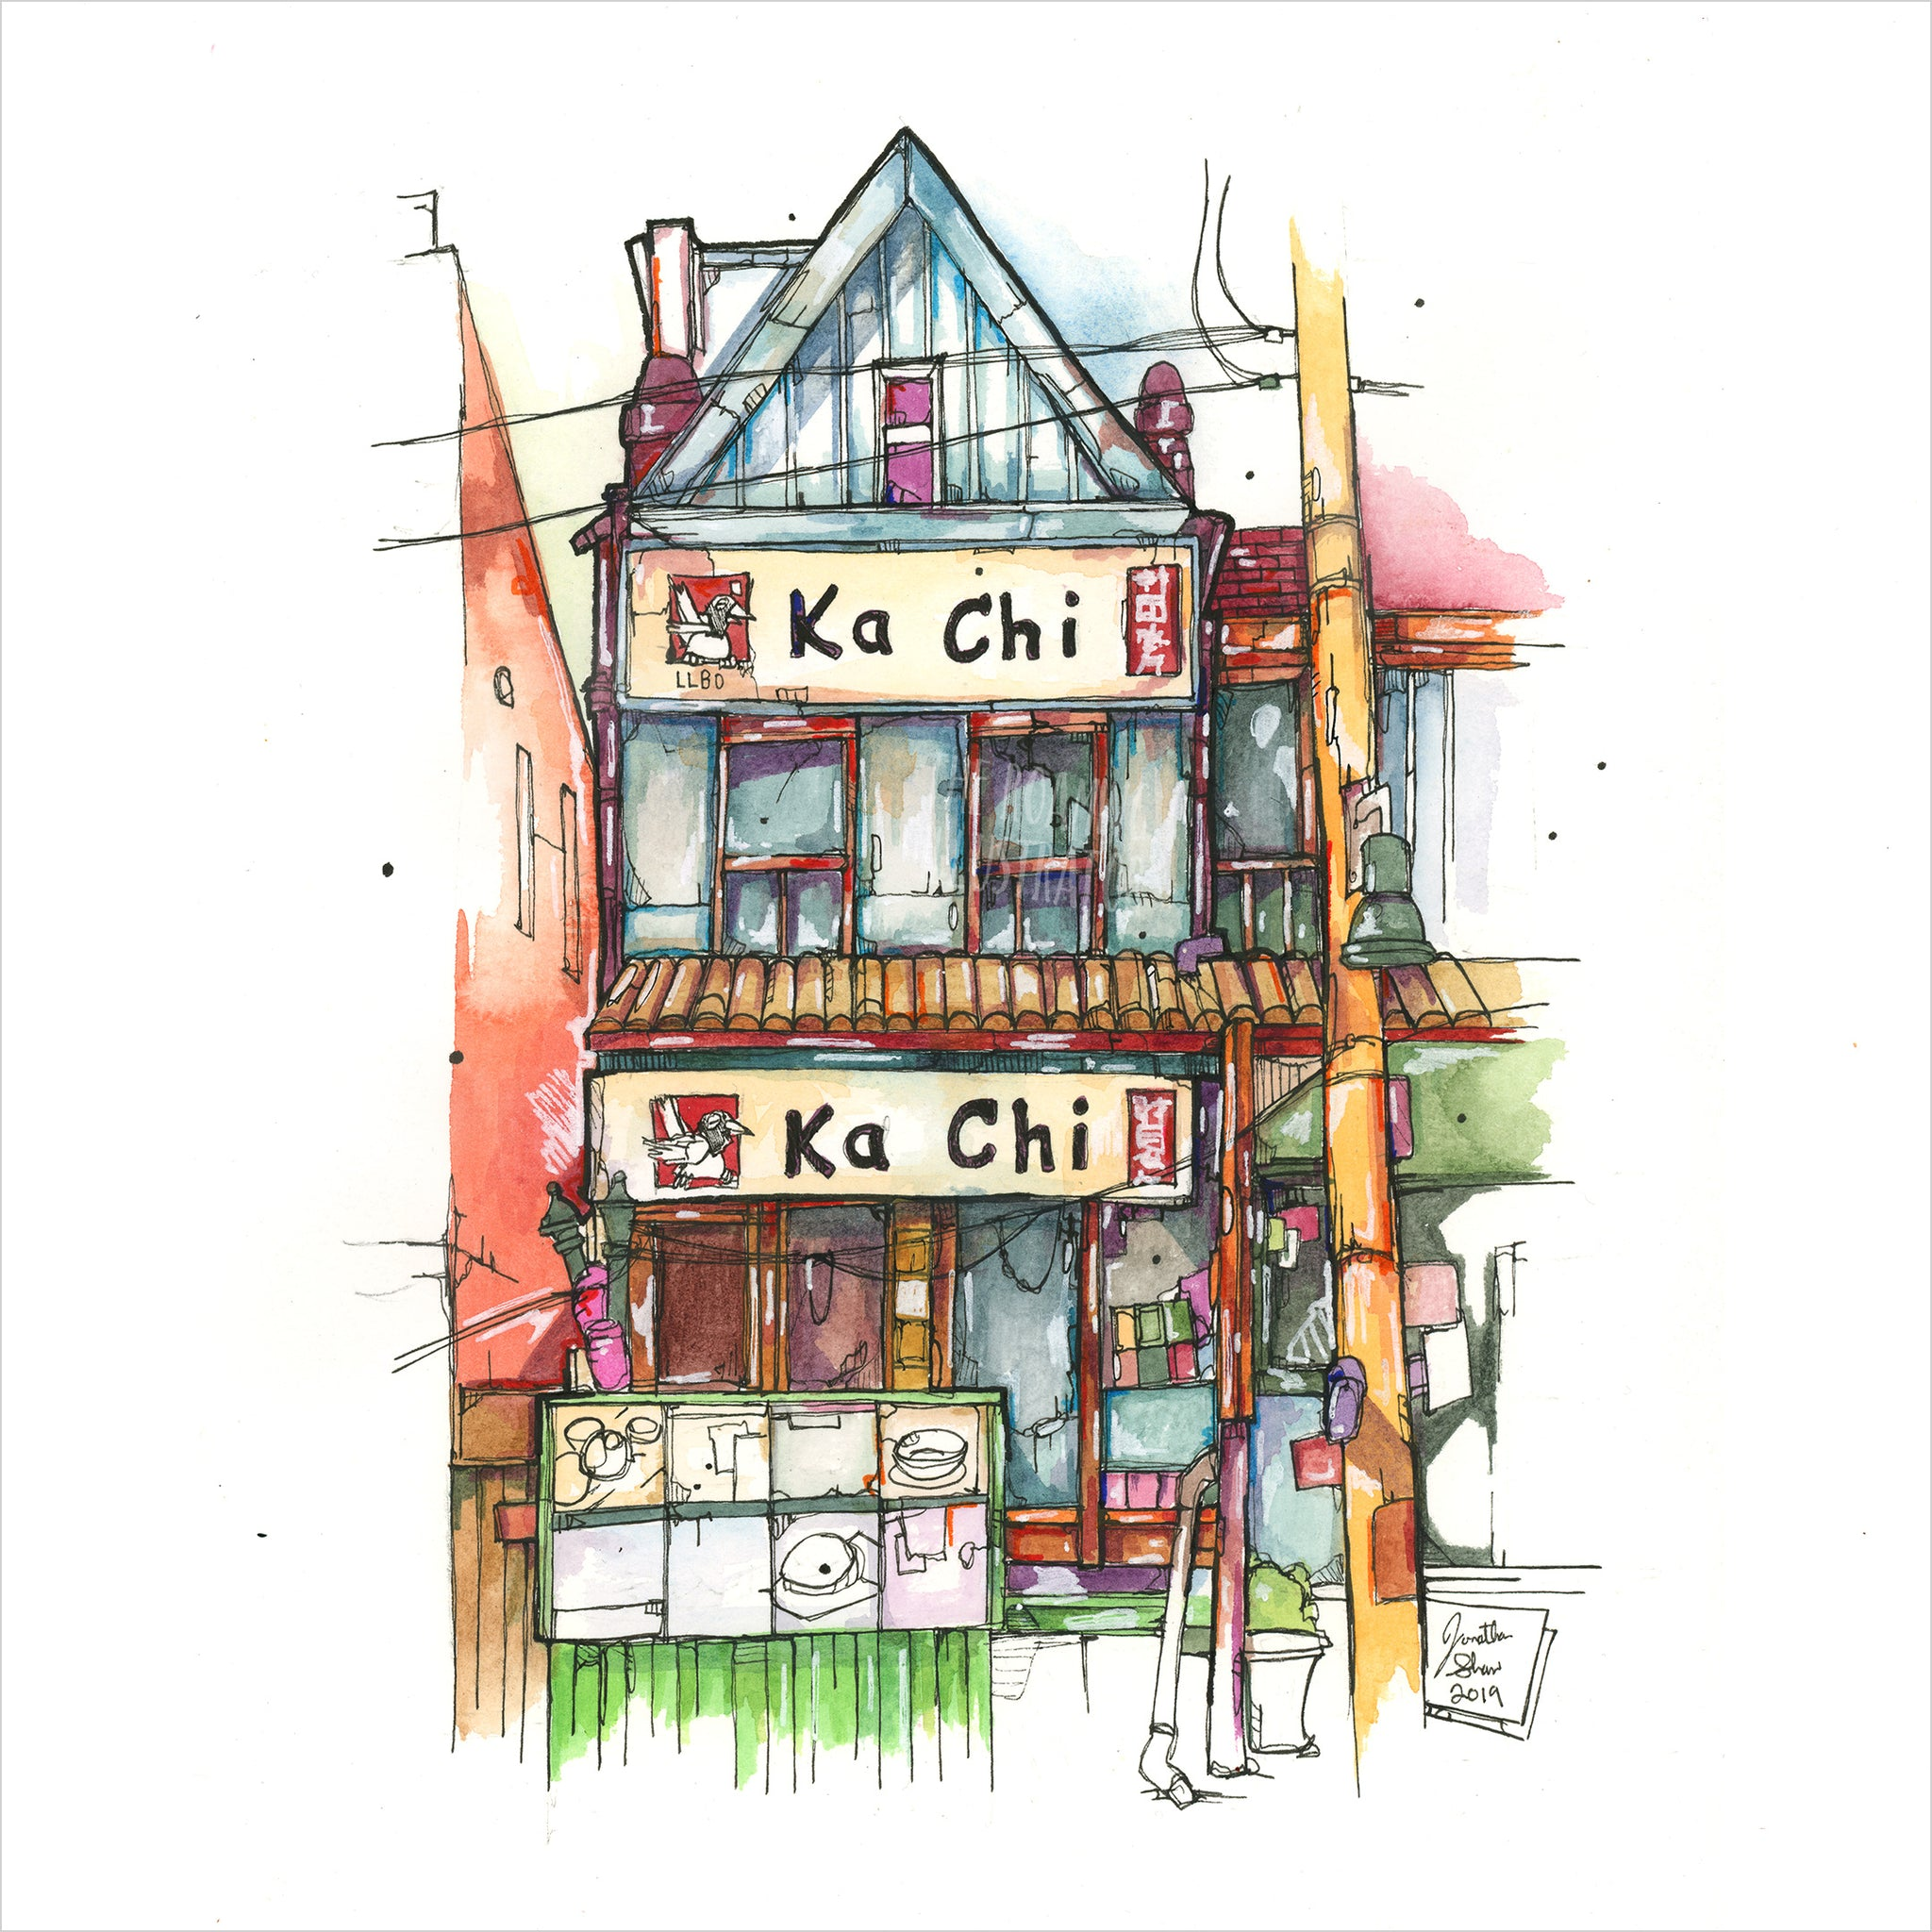 """Ka Chi Foods"" - 8x10 Reproduction Print"